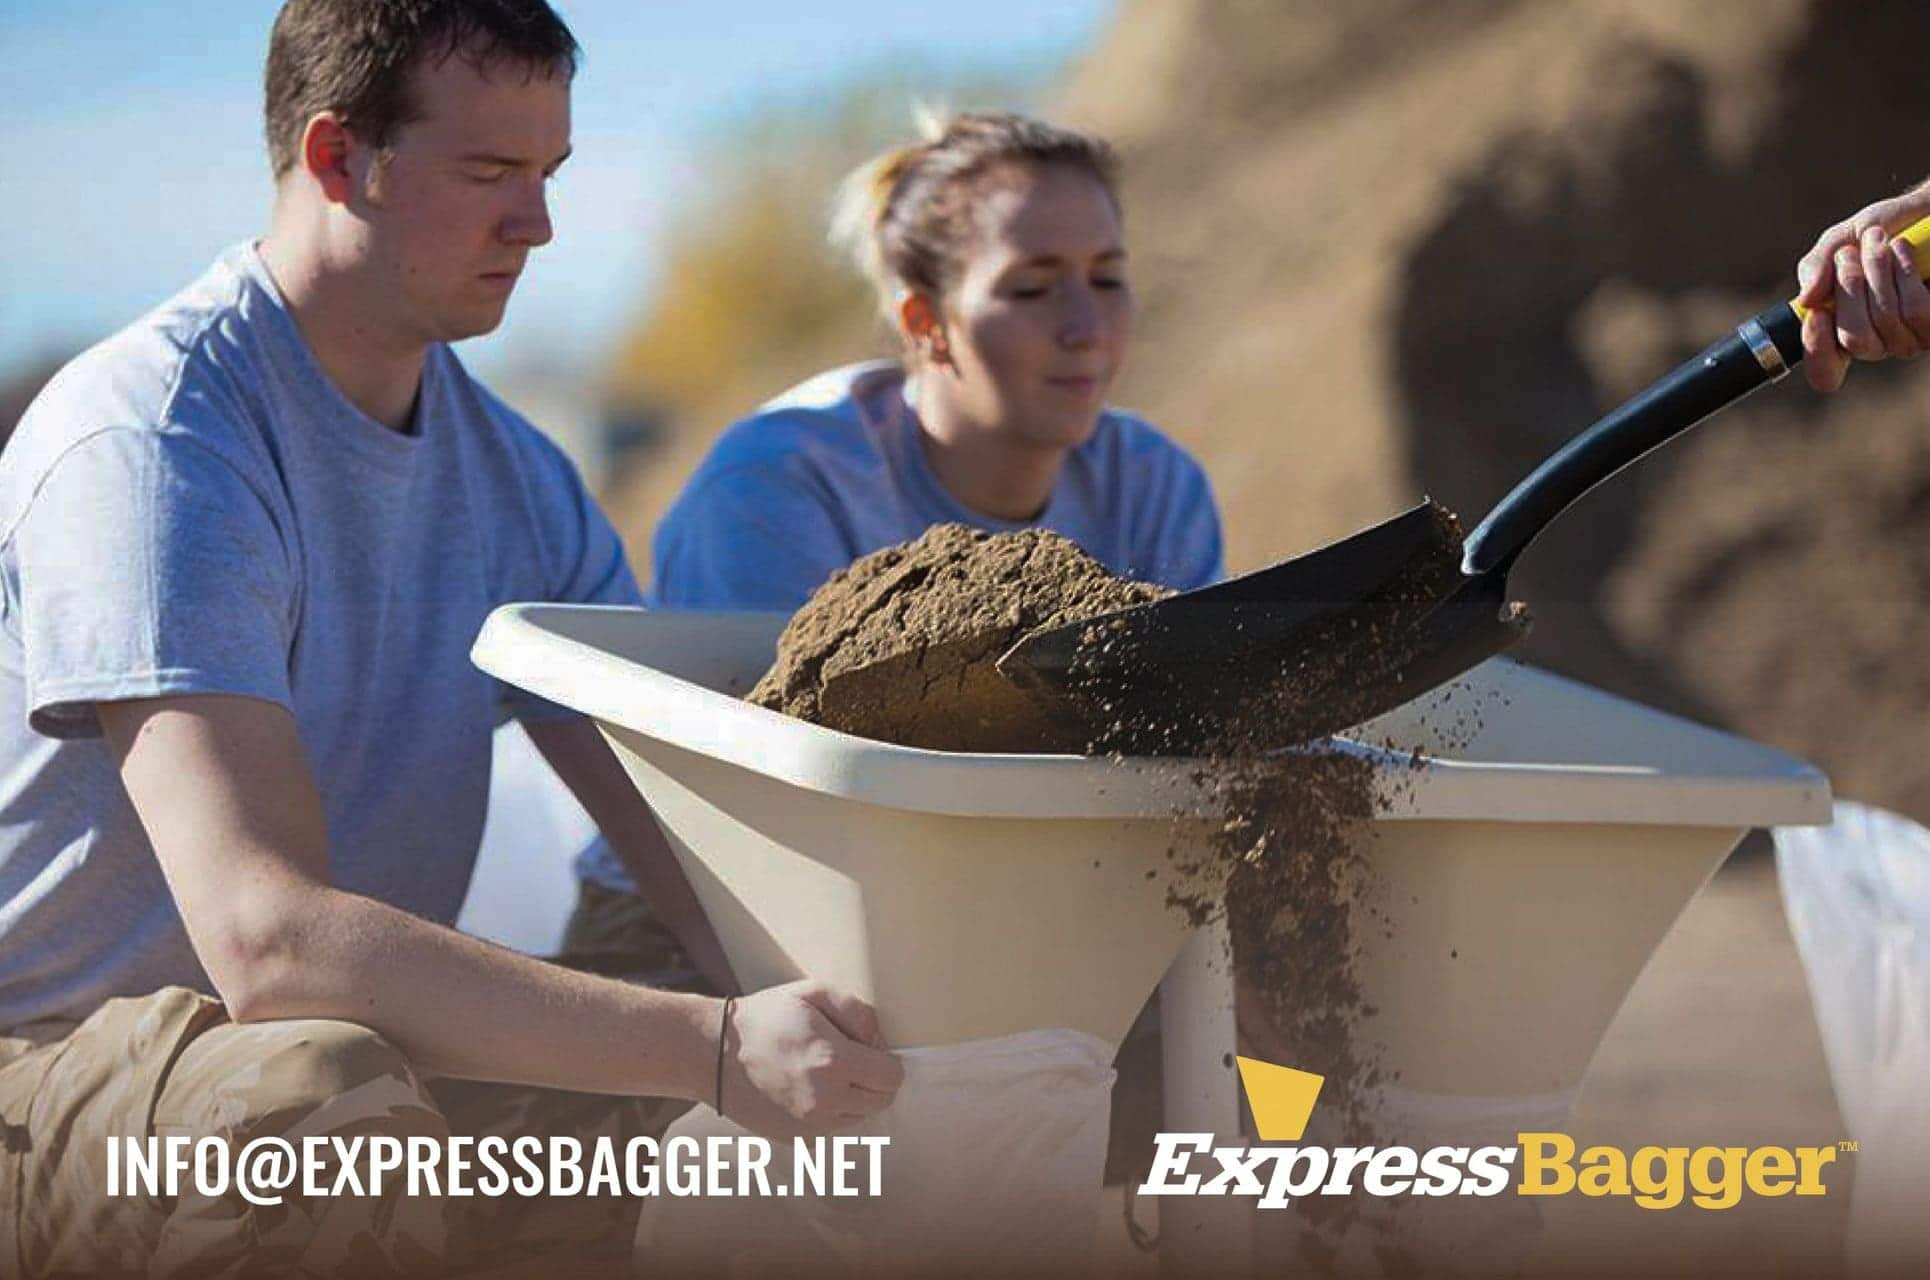 Man and woman using the ExpressBagger Classic sandbag filling tool to fill sandbags while a third man shovels sand